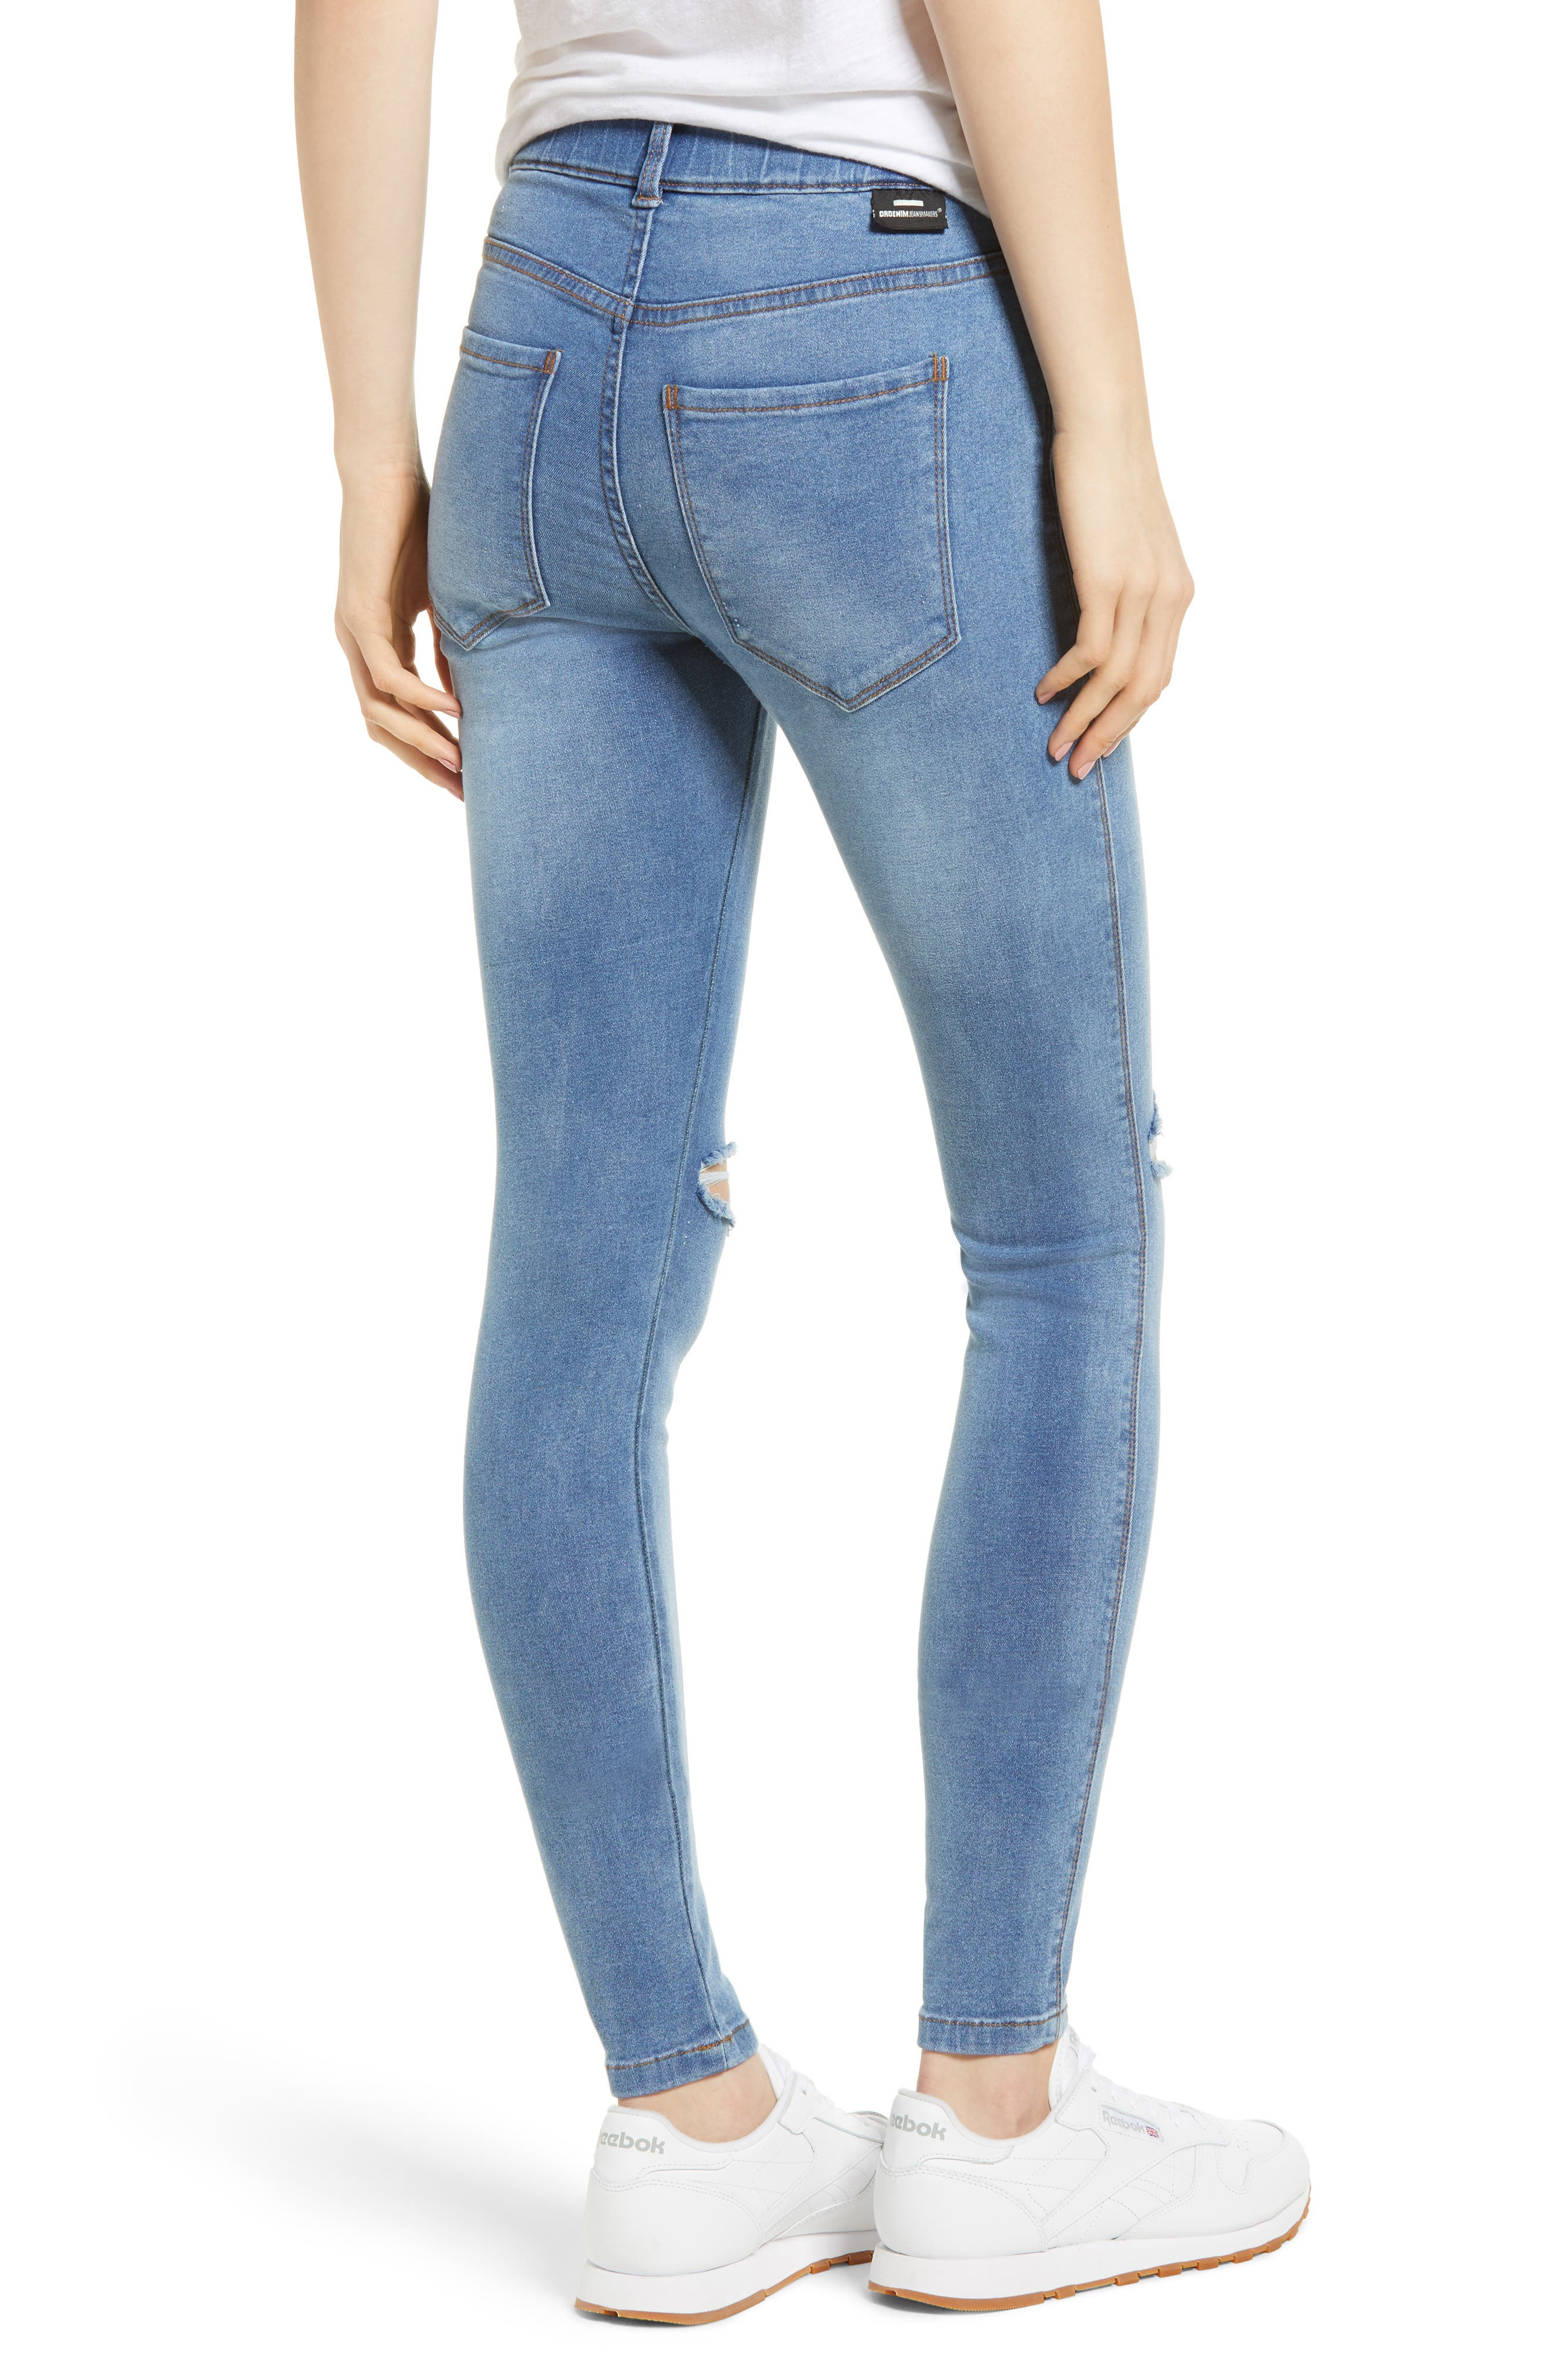 Lexy Ripped Skinny Jeans,                             Alternate thumbnail 2, color,                             Light Stone Destroyed